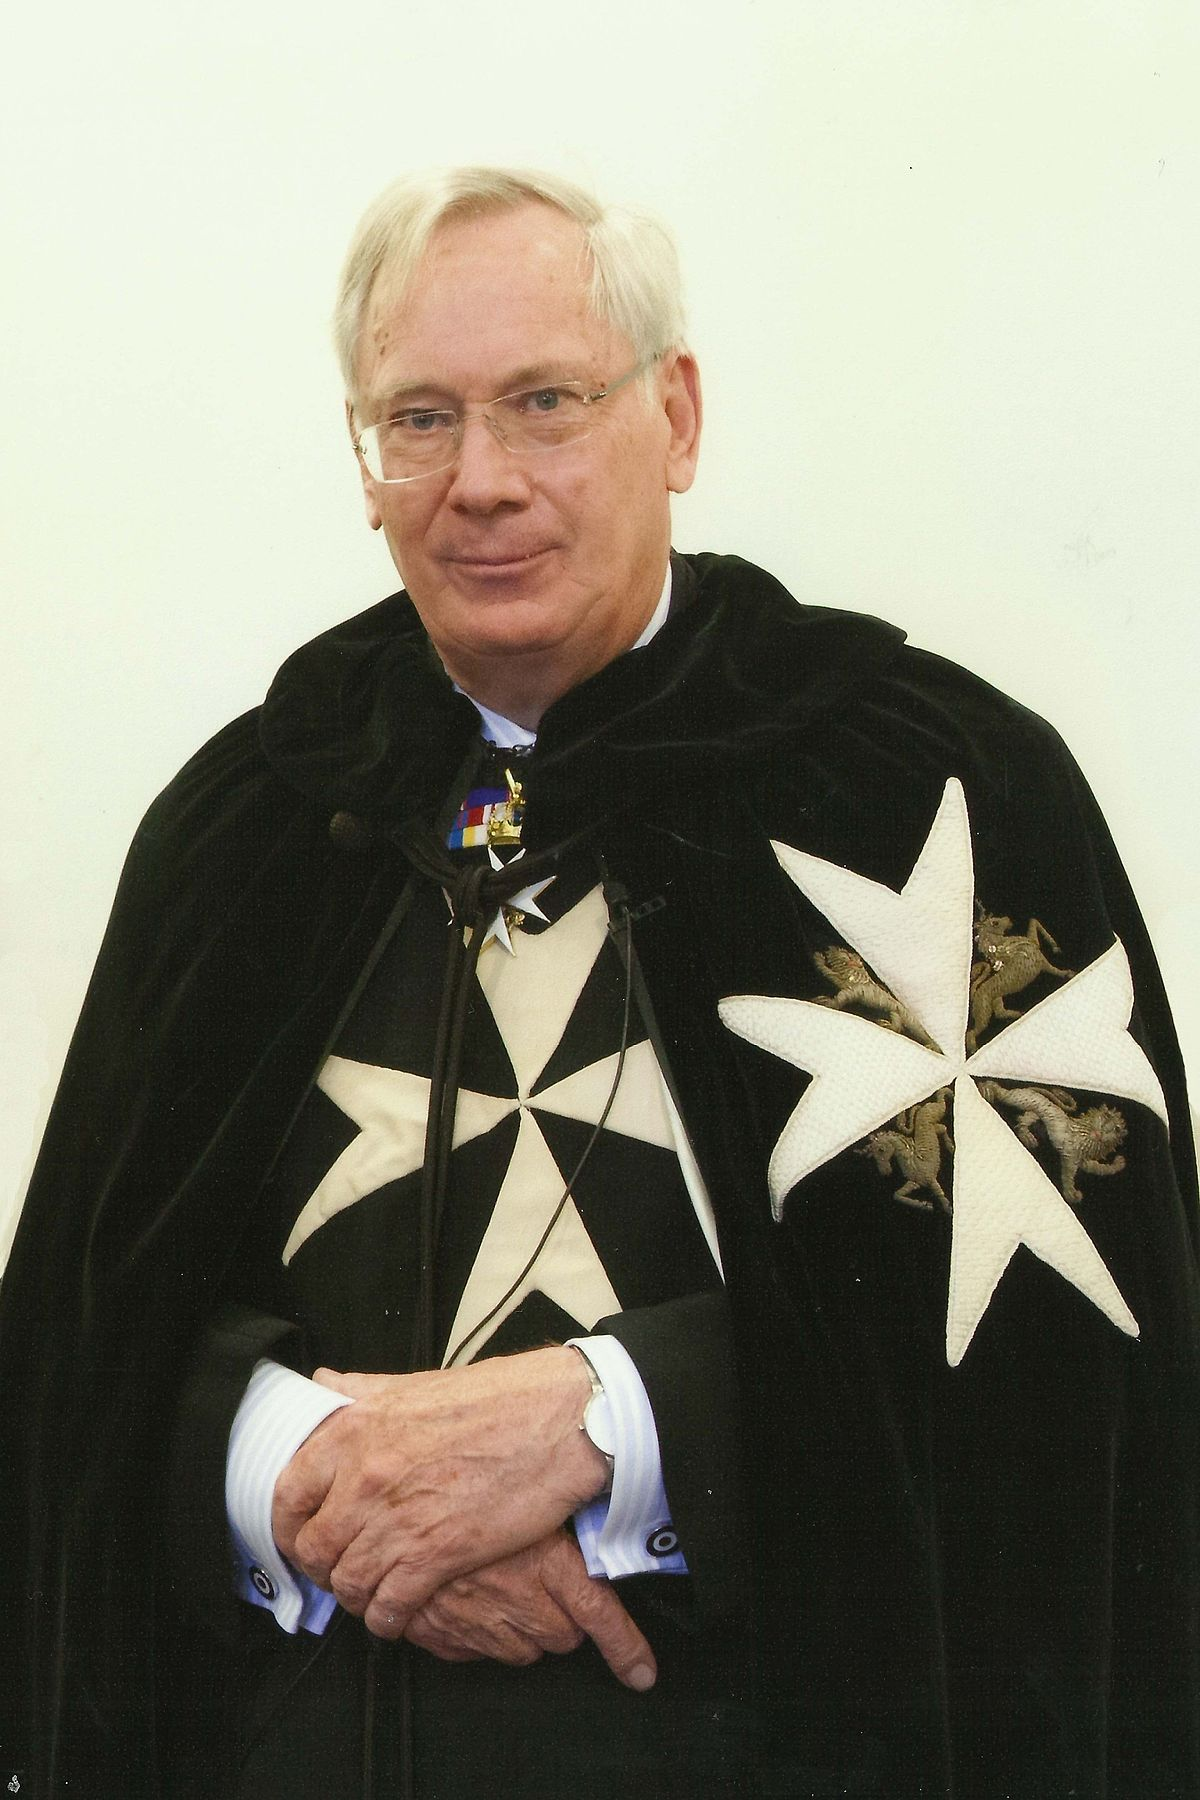 Prince Richard Duke of Gloucester